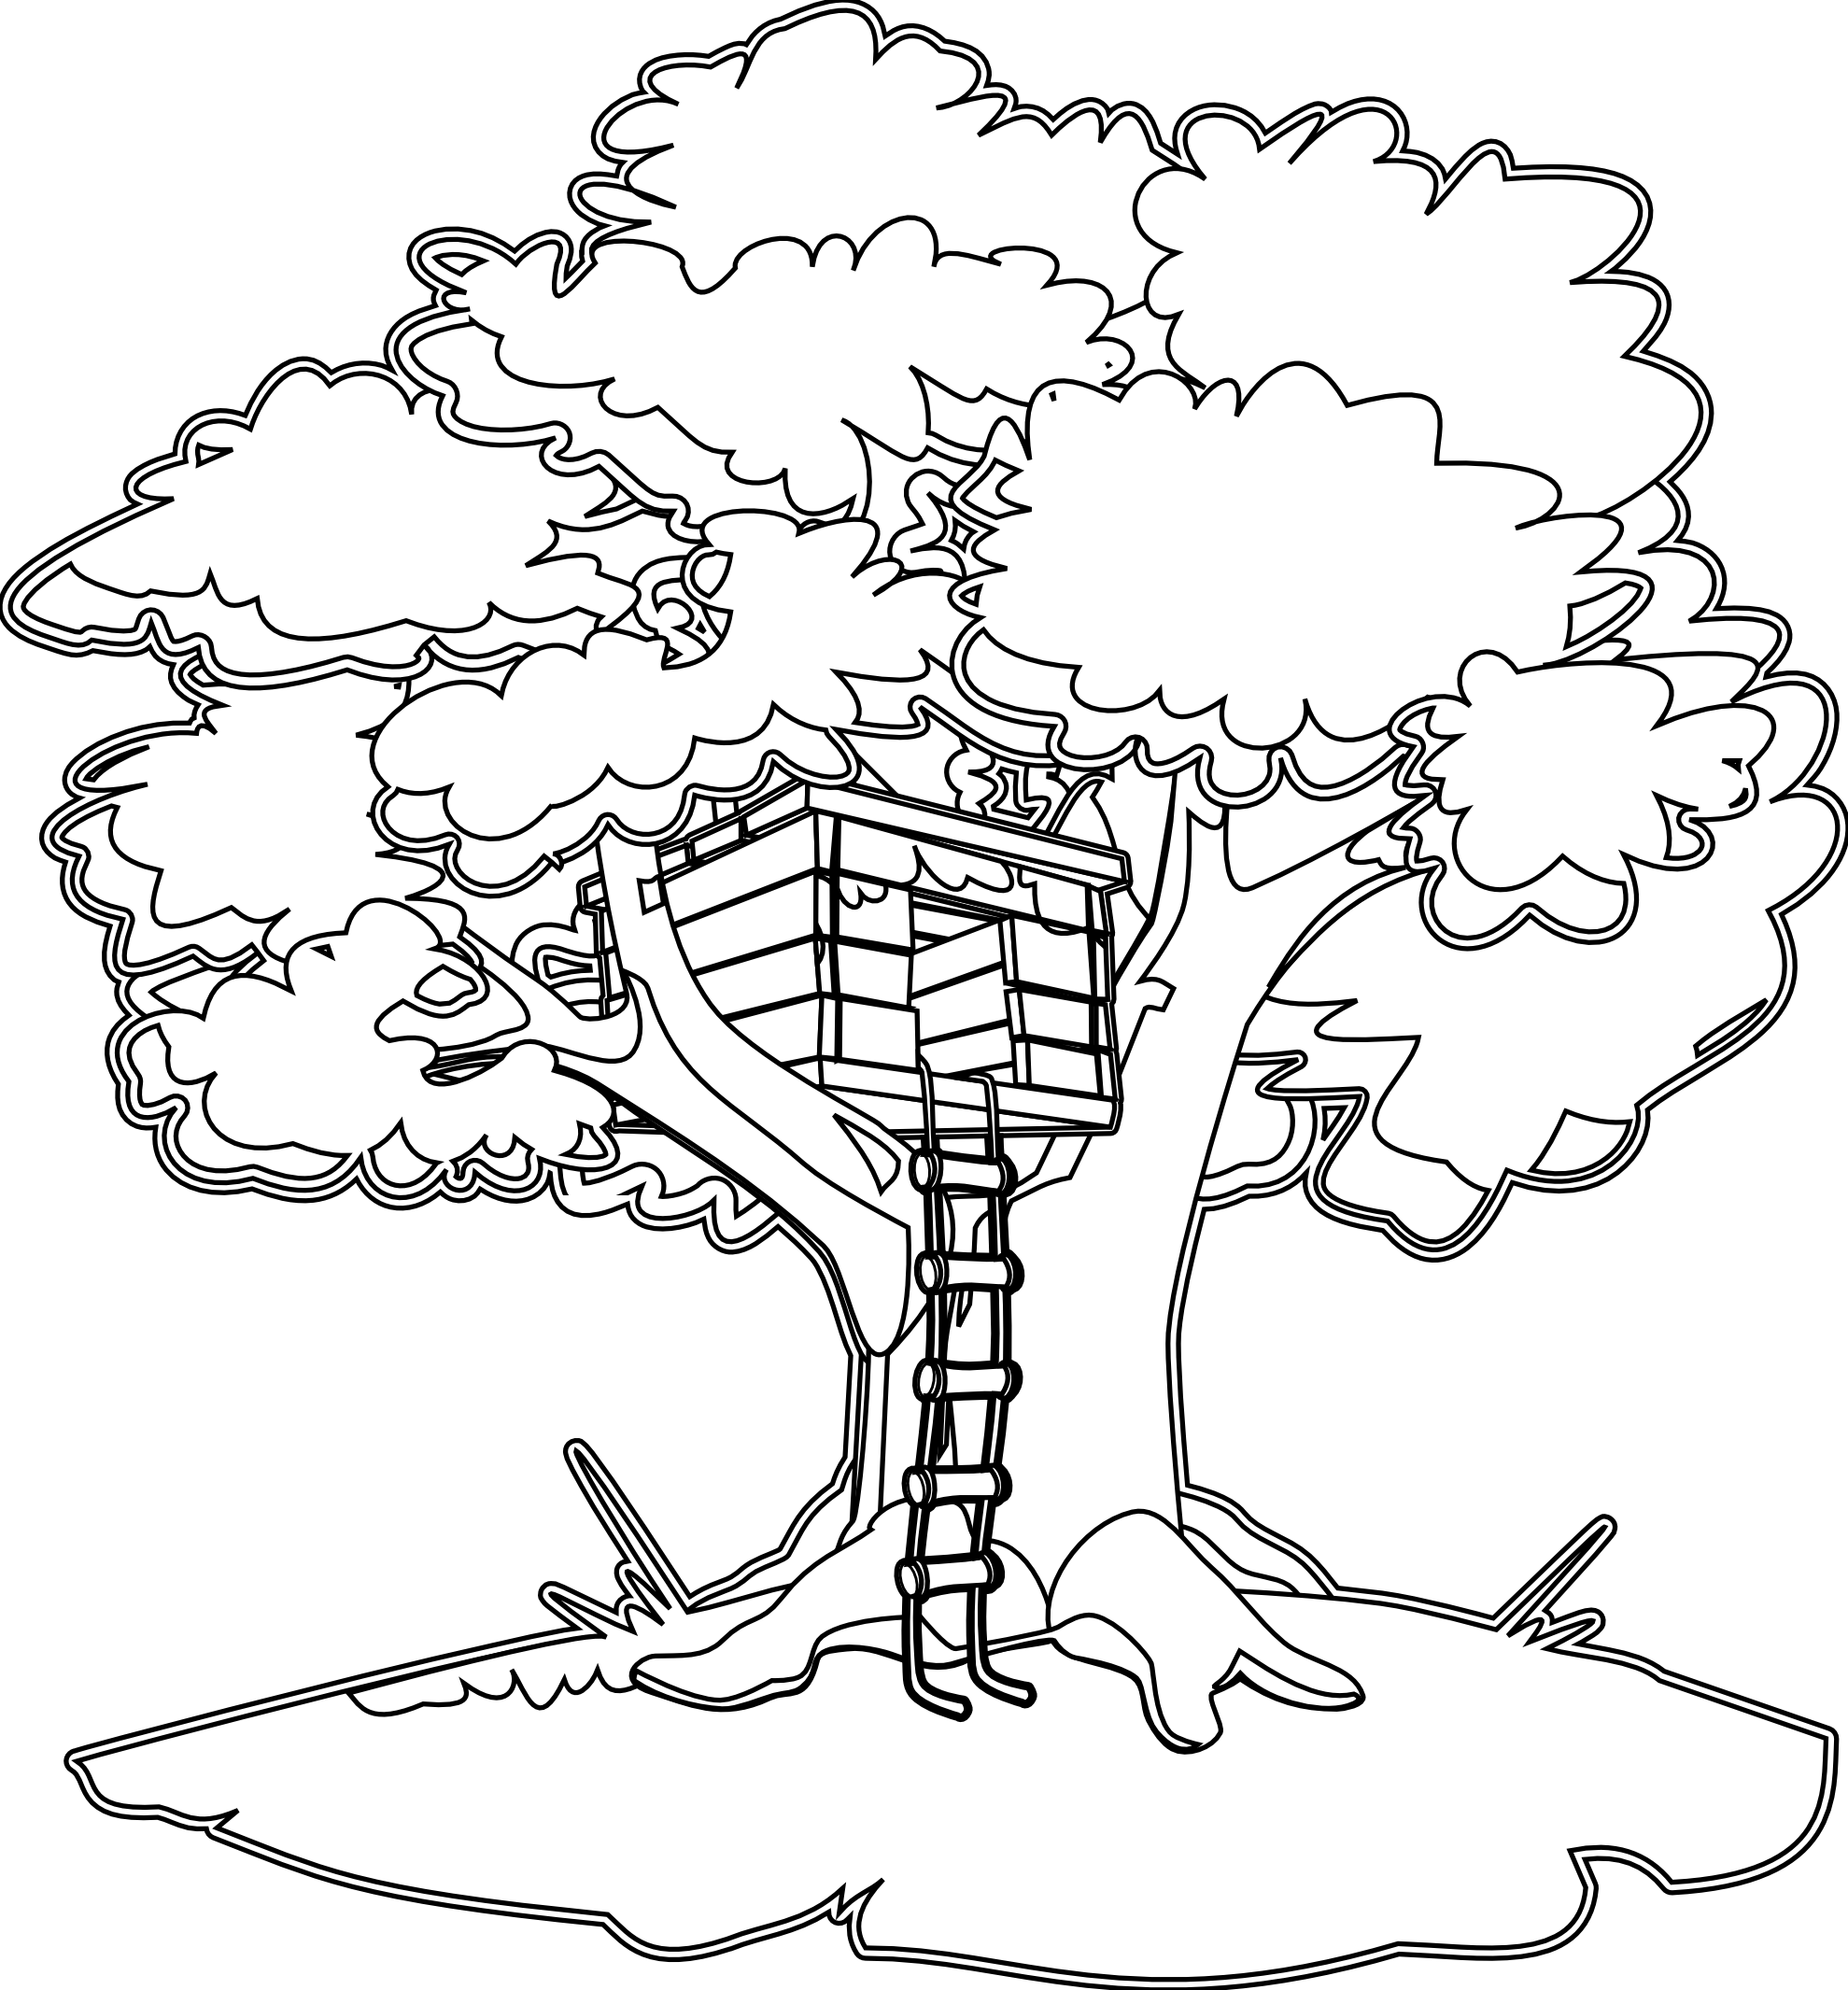 coloring sheets house magic tree house coloring pages to download and print for free house coloring sheets